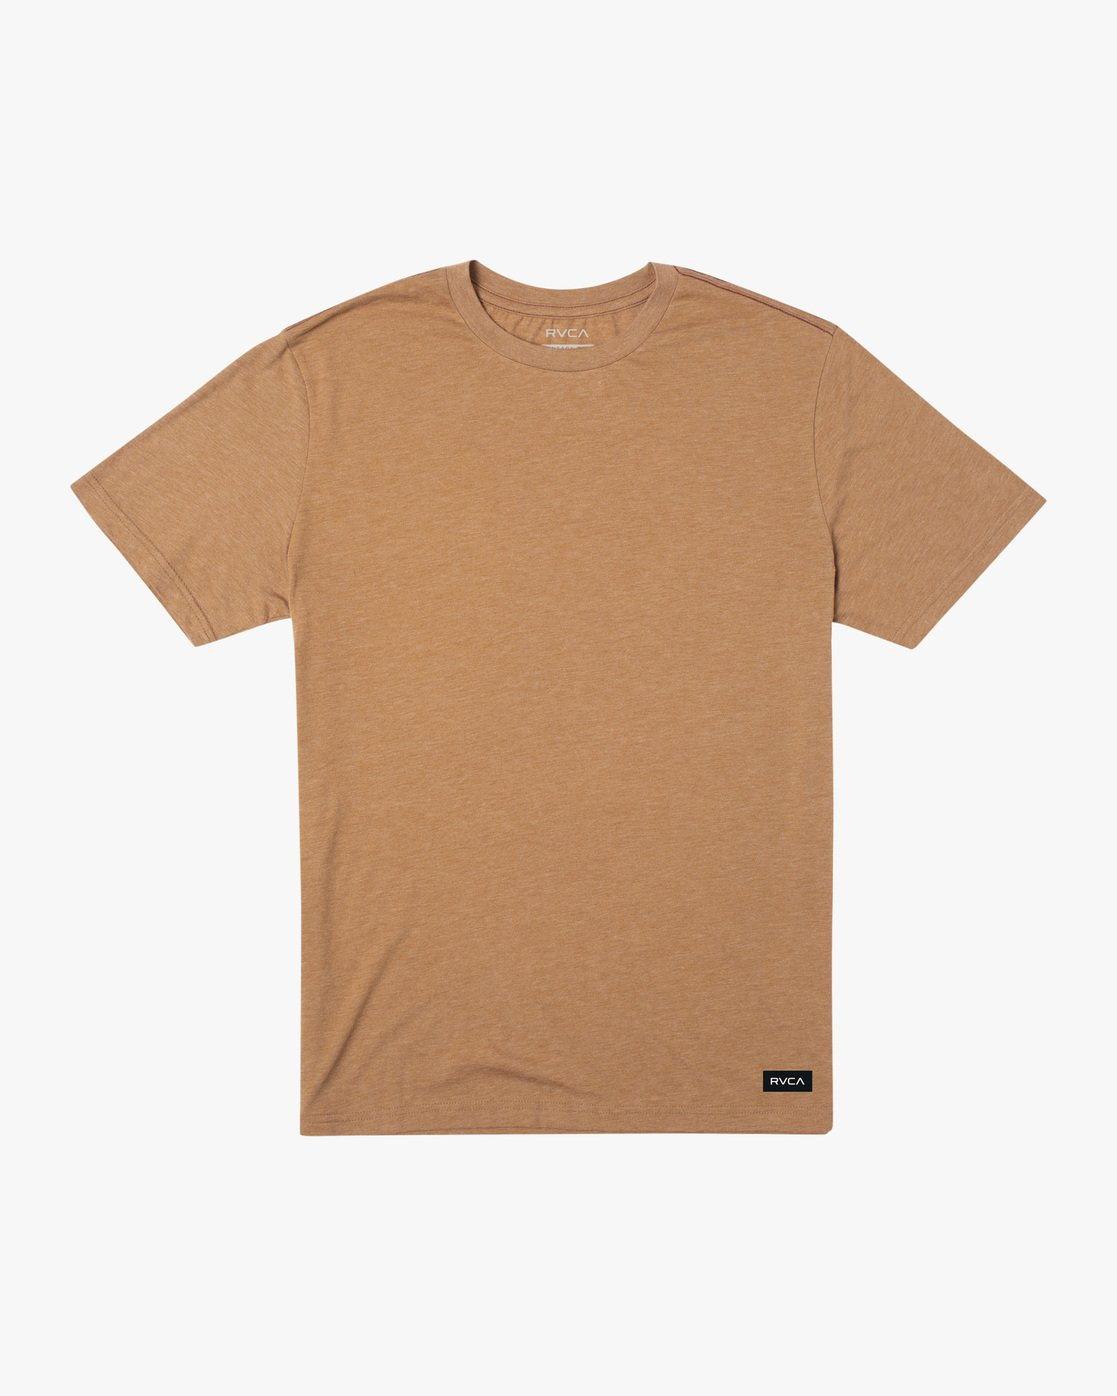 0 SOLO LABEL SHORT SLEEVE TEE Brown M420VRSO RVCA